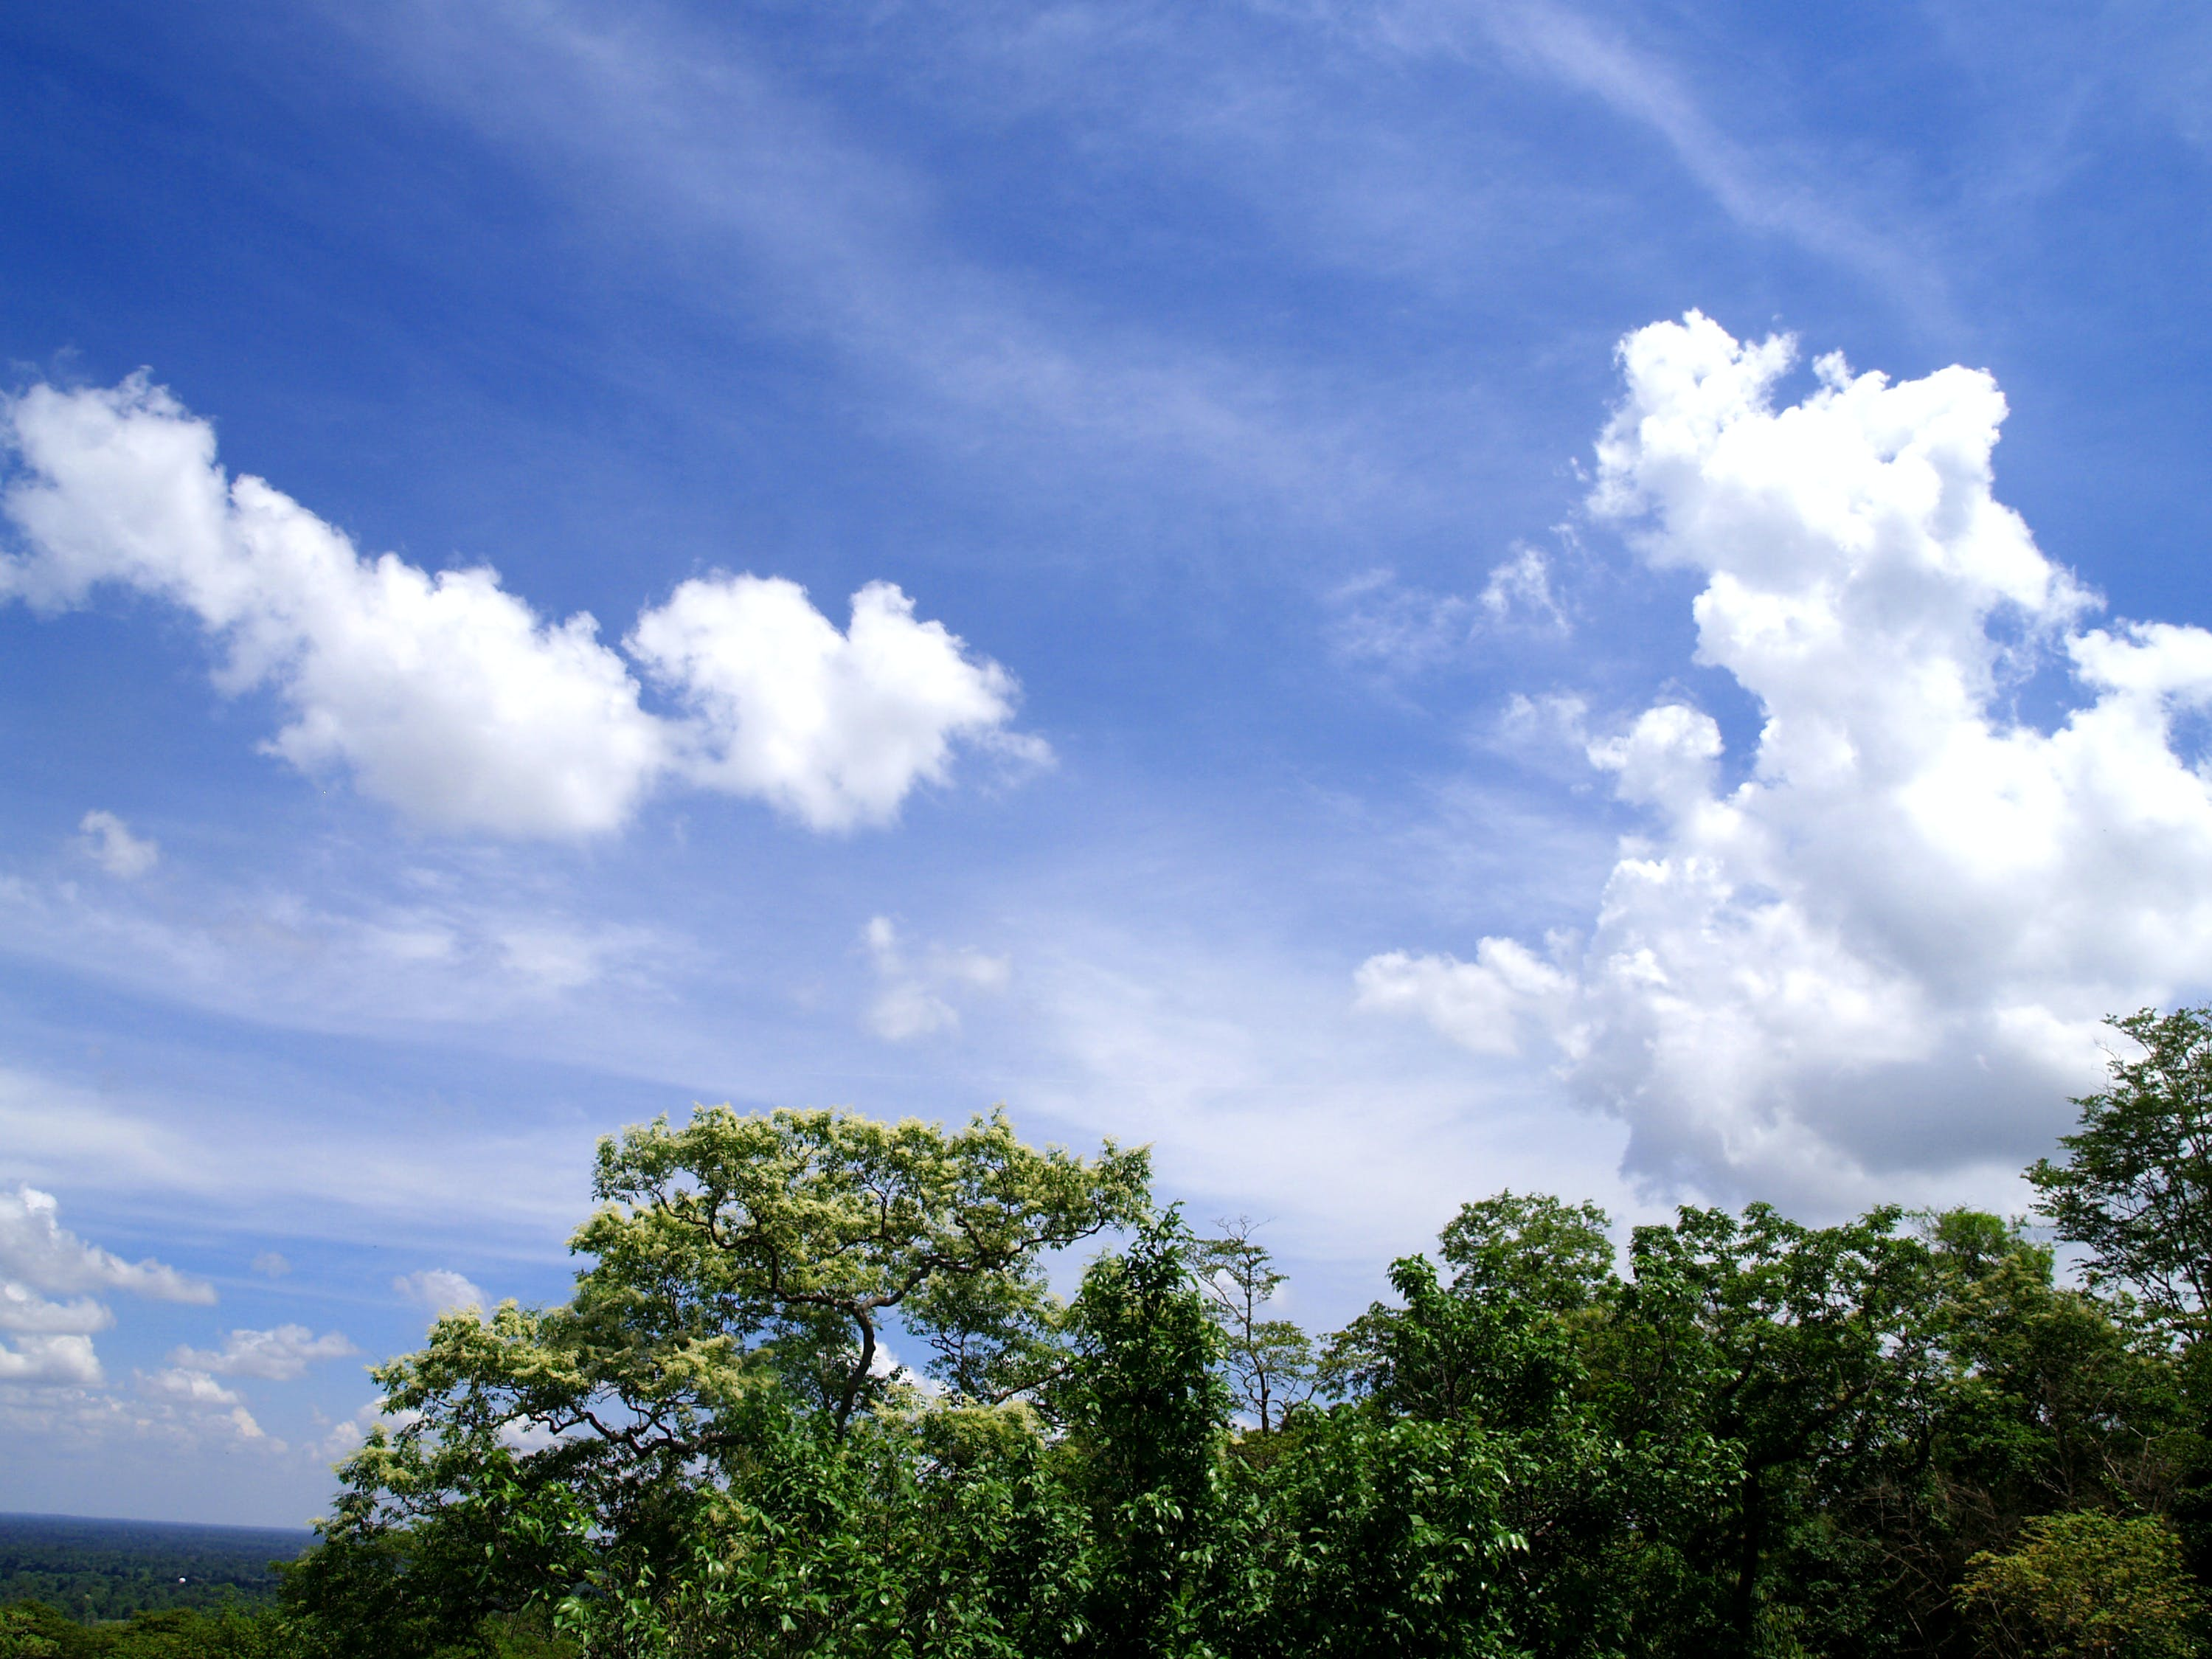 Free stock photo of nature, sky, clouds, trees